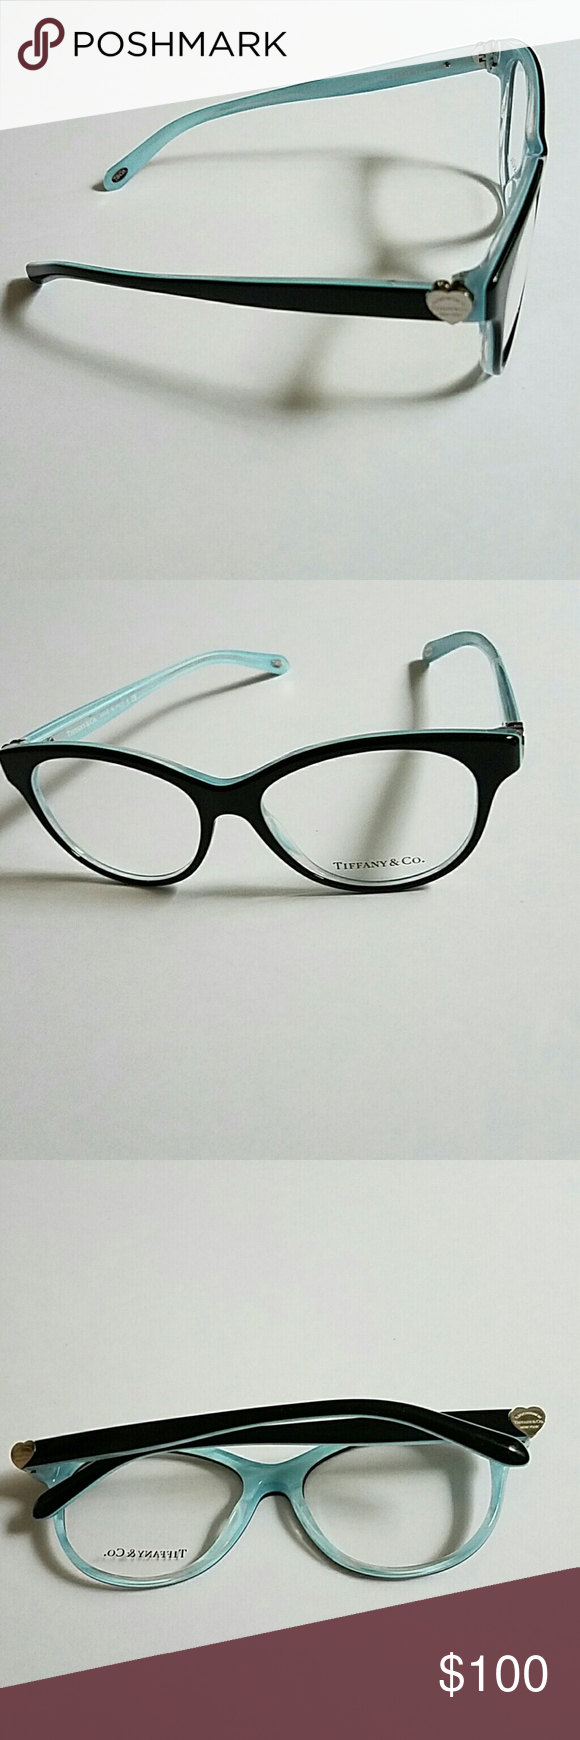 59e9ce16d8c2 Tiffany eyeglasses - blue interior Authentic, silver heart accents on side  Tiffany & Co. Accessories Glasses